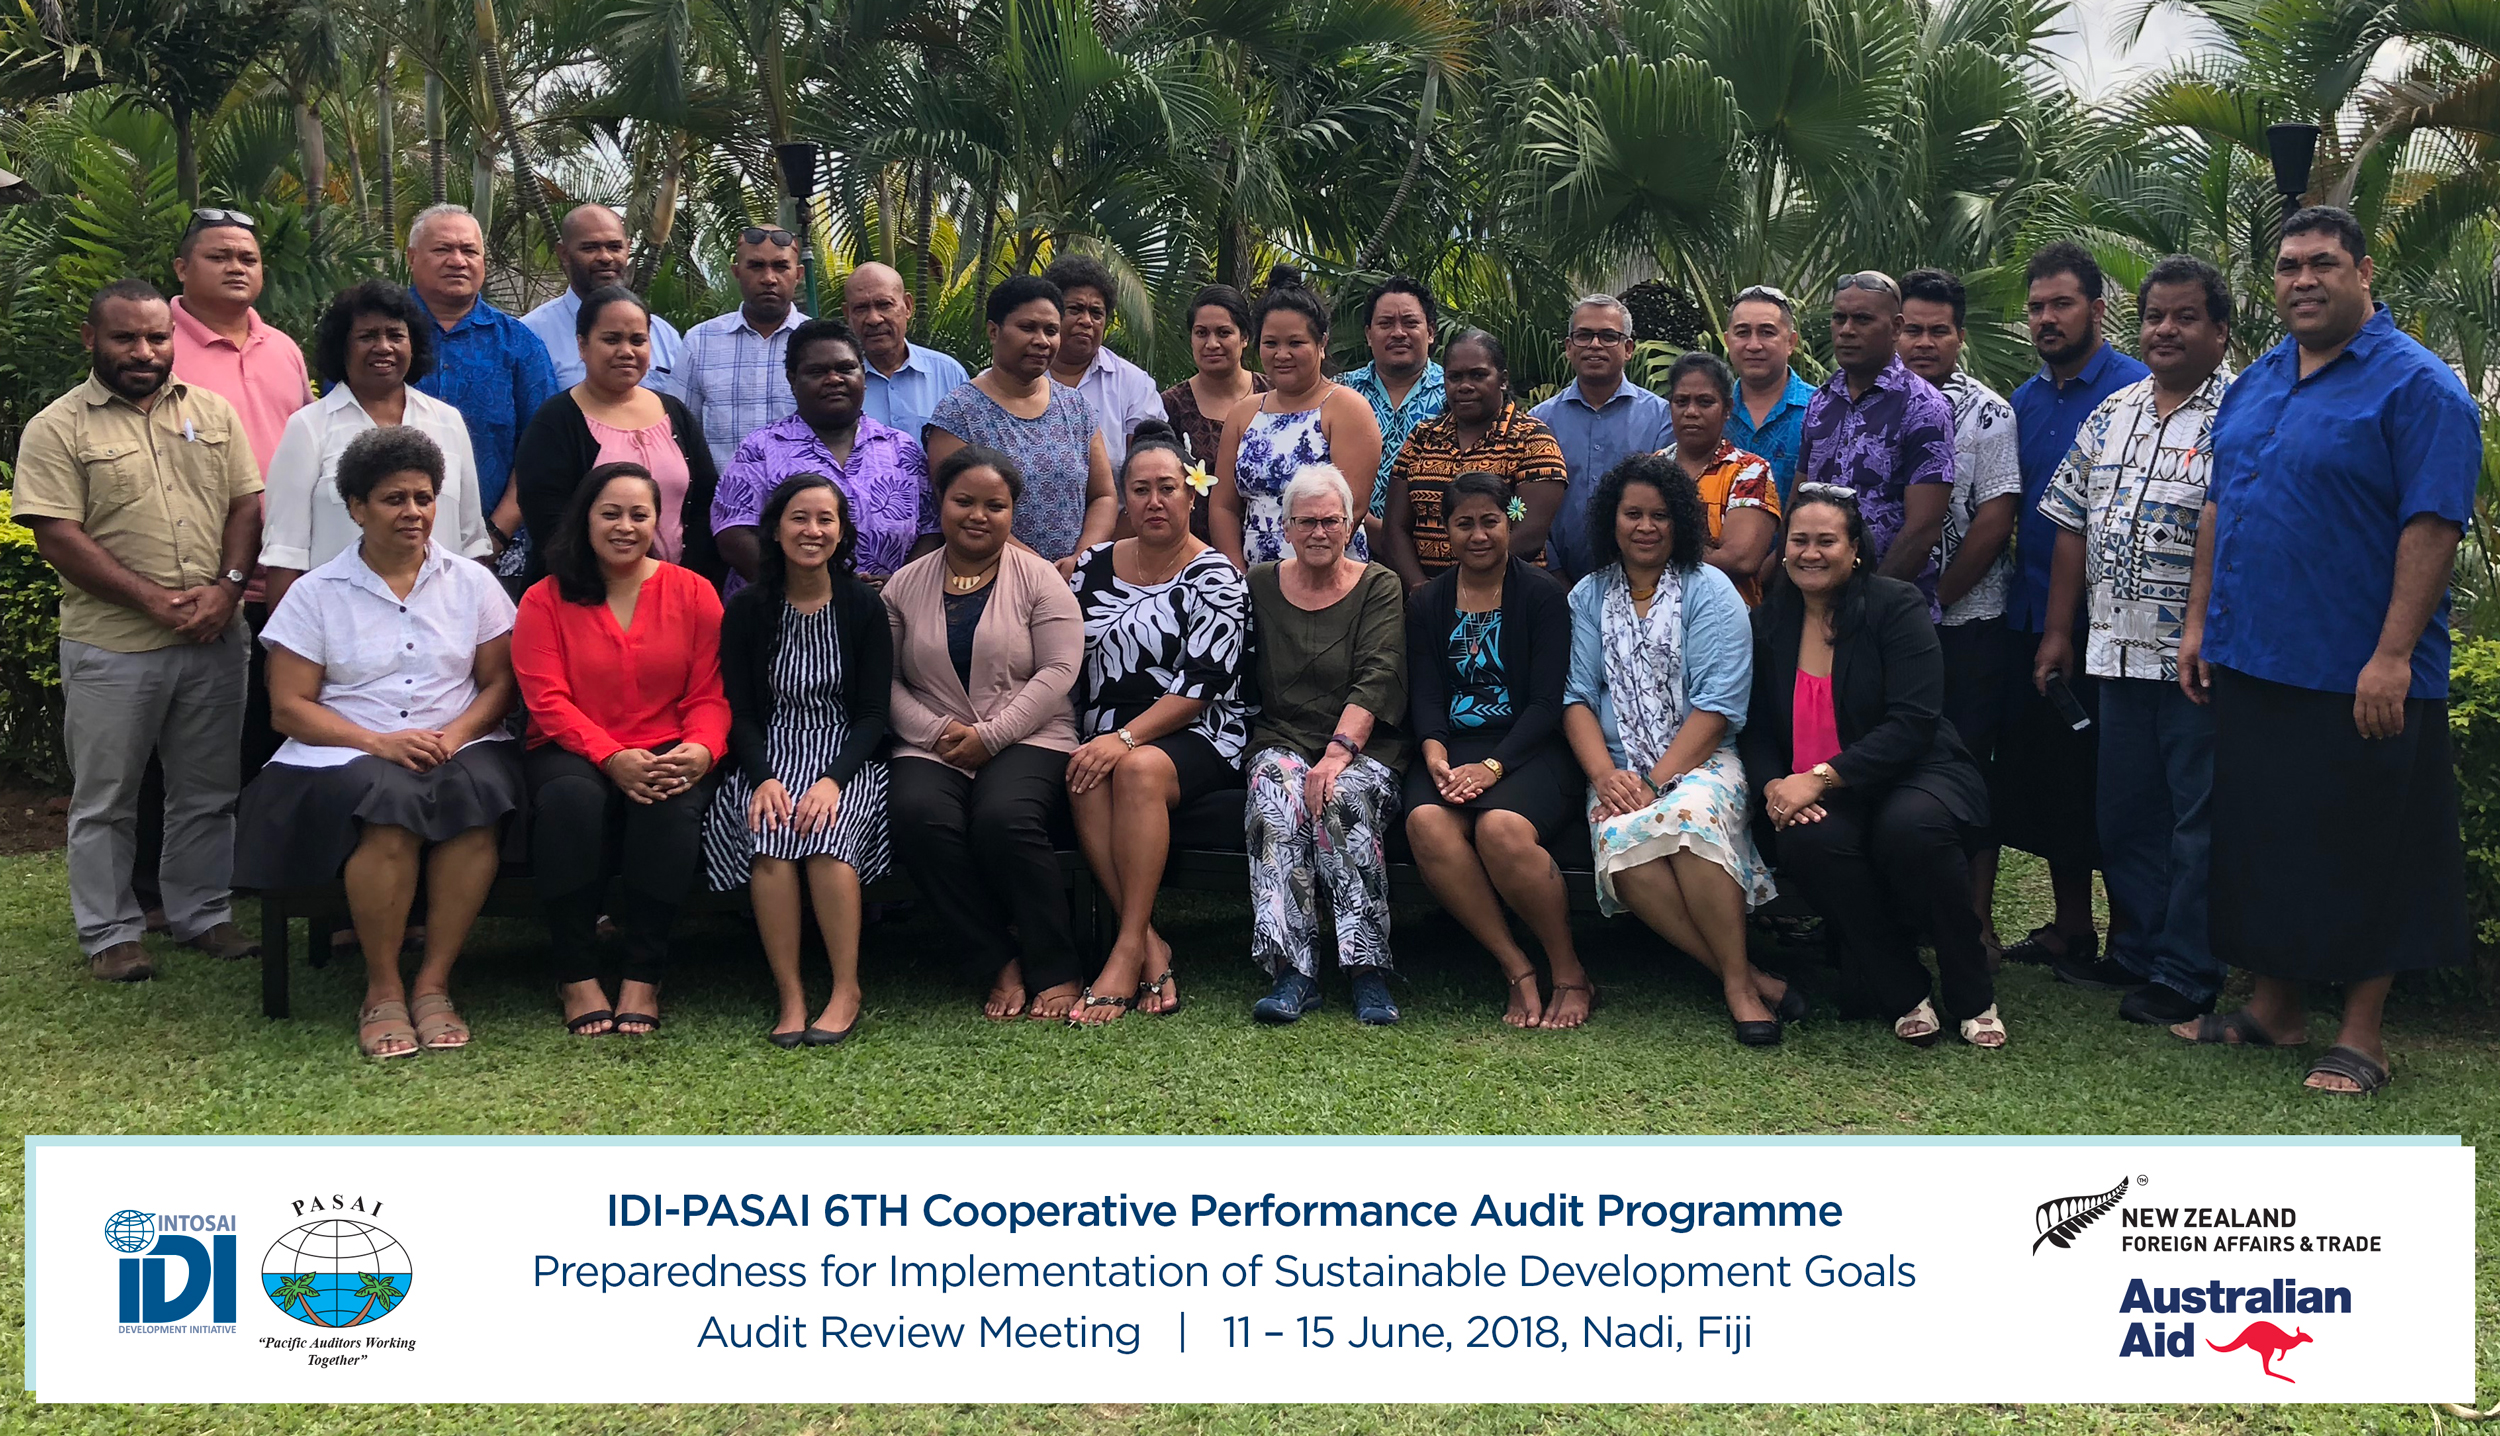 Attendees of the IDI/PASAI 6th Cooperative Performance Audit Programme Review, June 2018